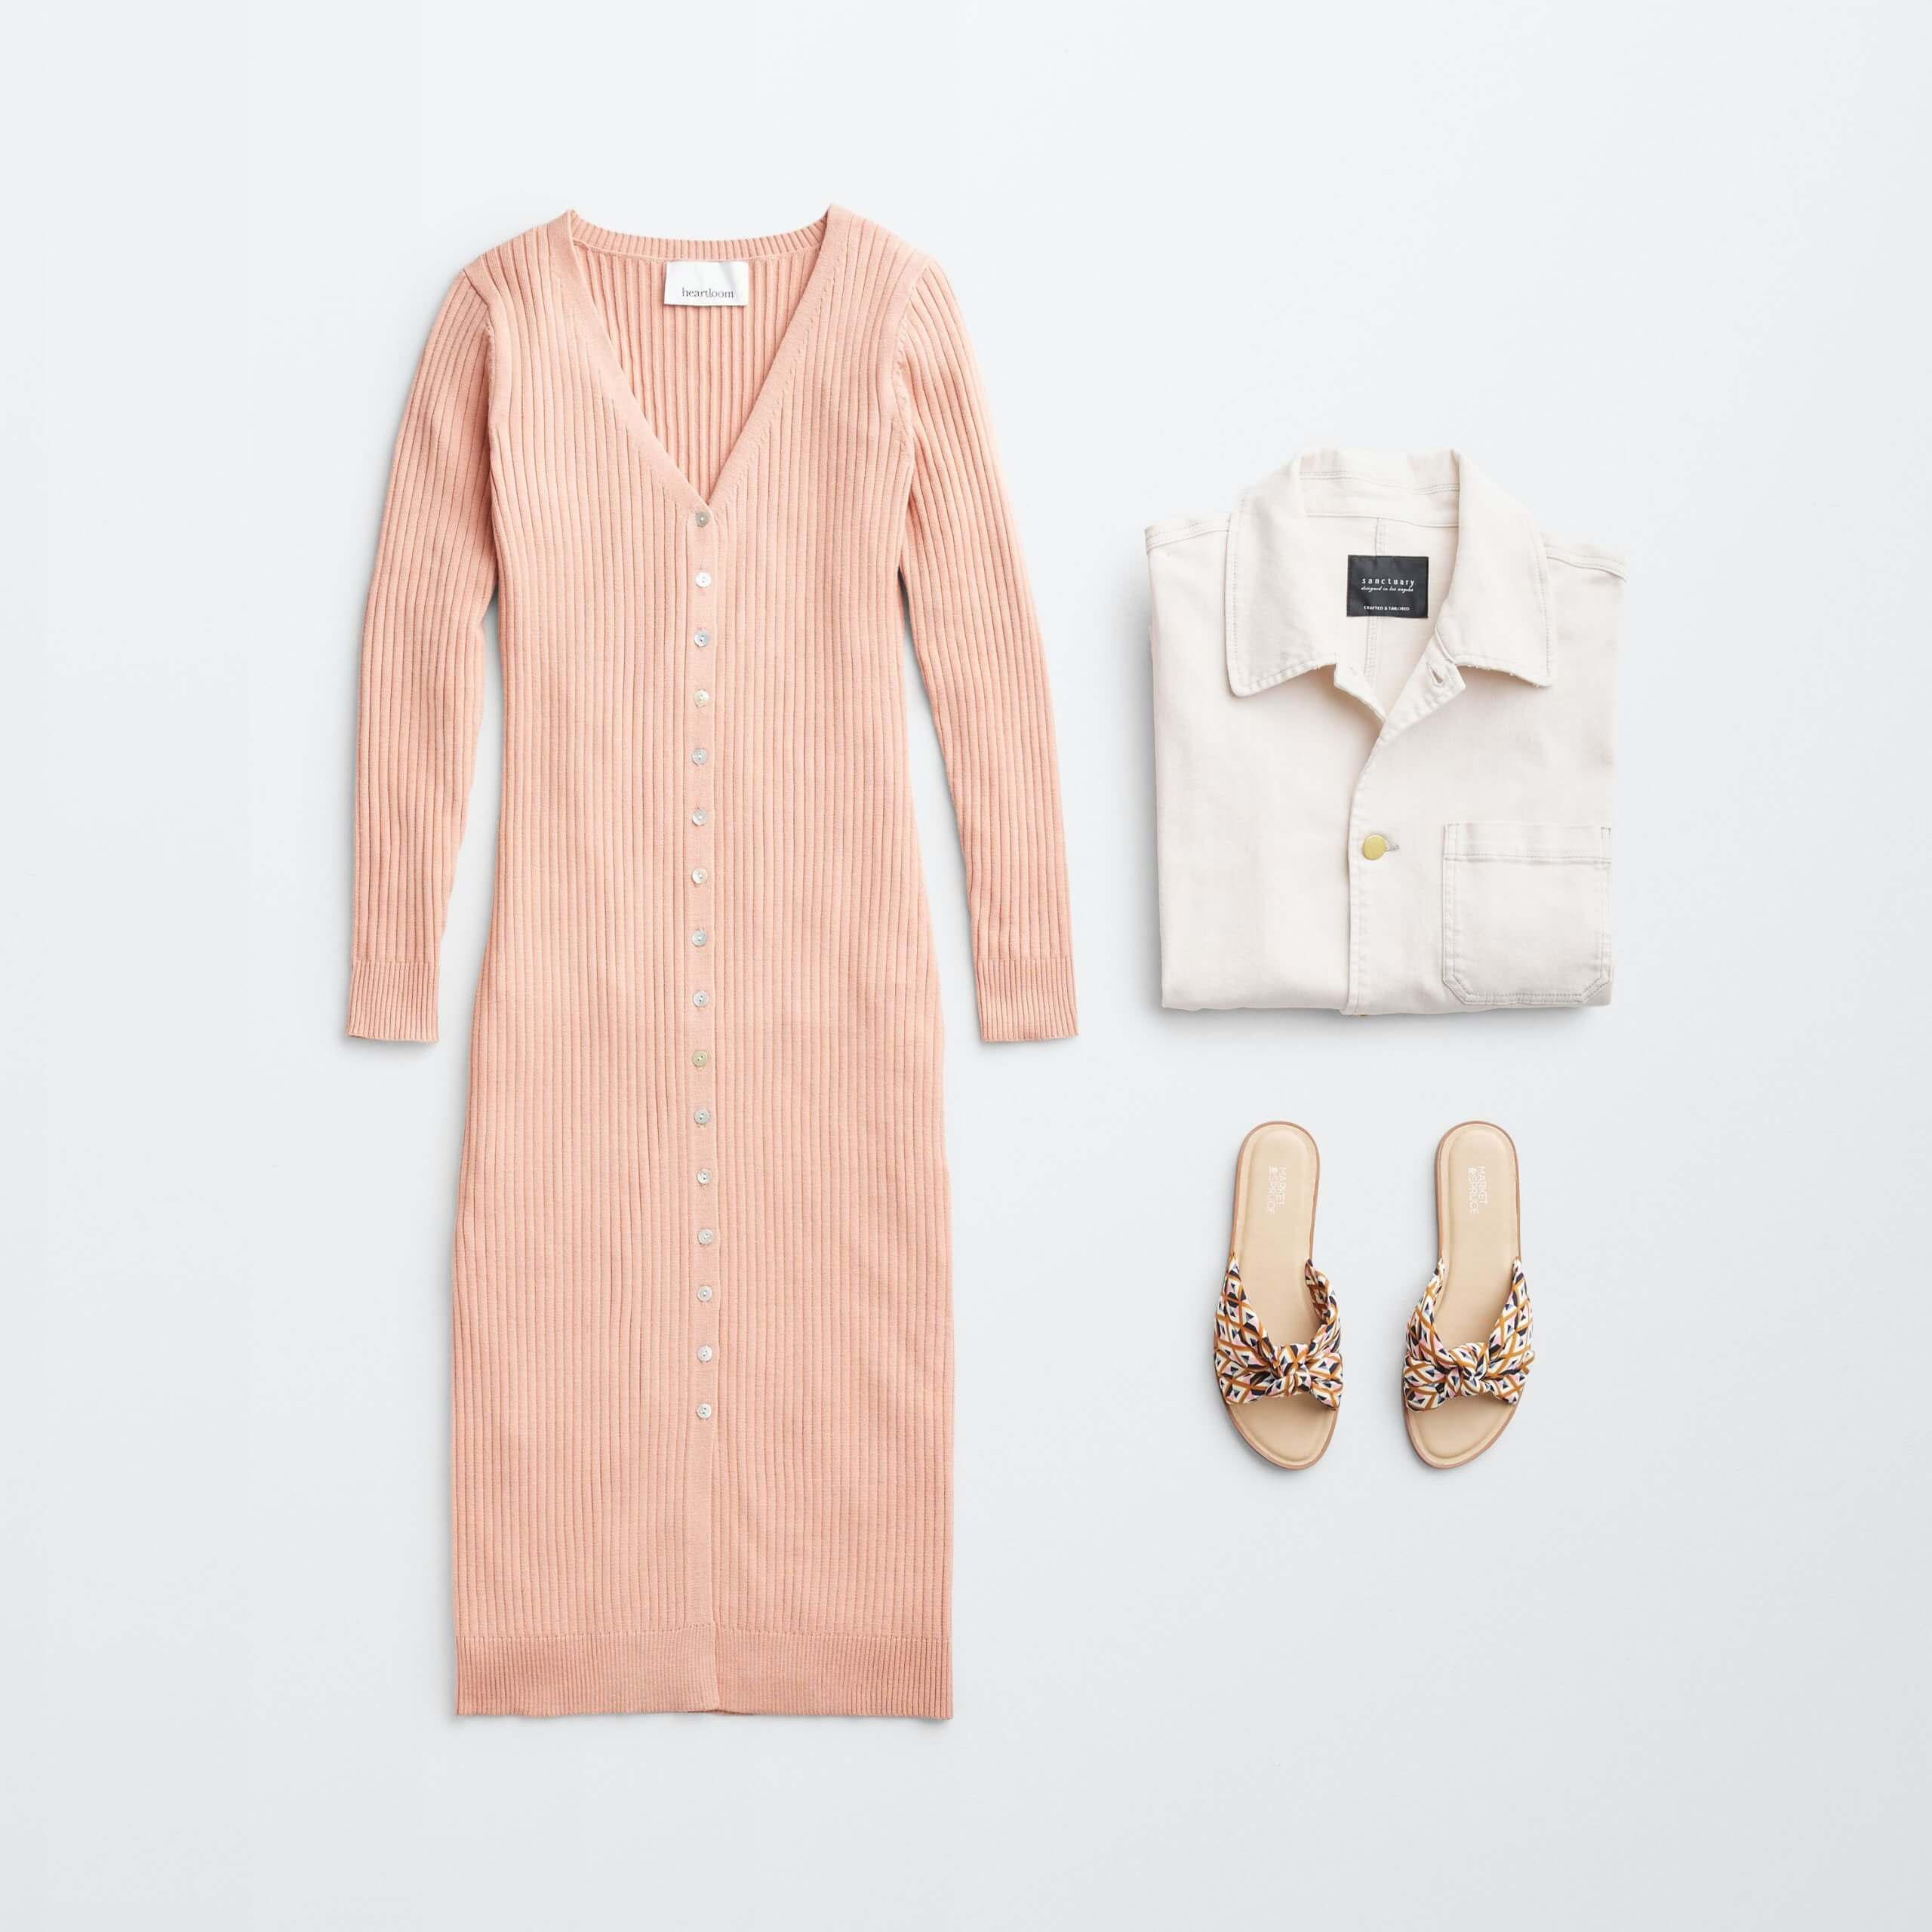 Stitch Fix Women's outfit laydown featuring a blush pink knit midi dress, cream utility jacket and knotted slide sandals with brown animal print.